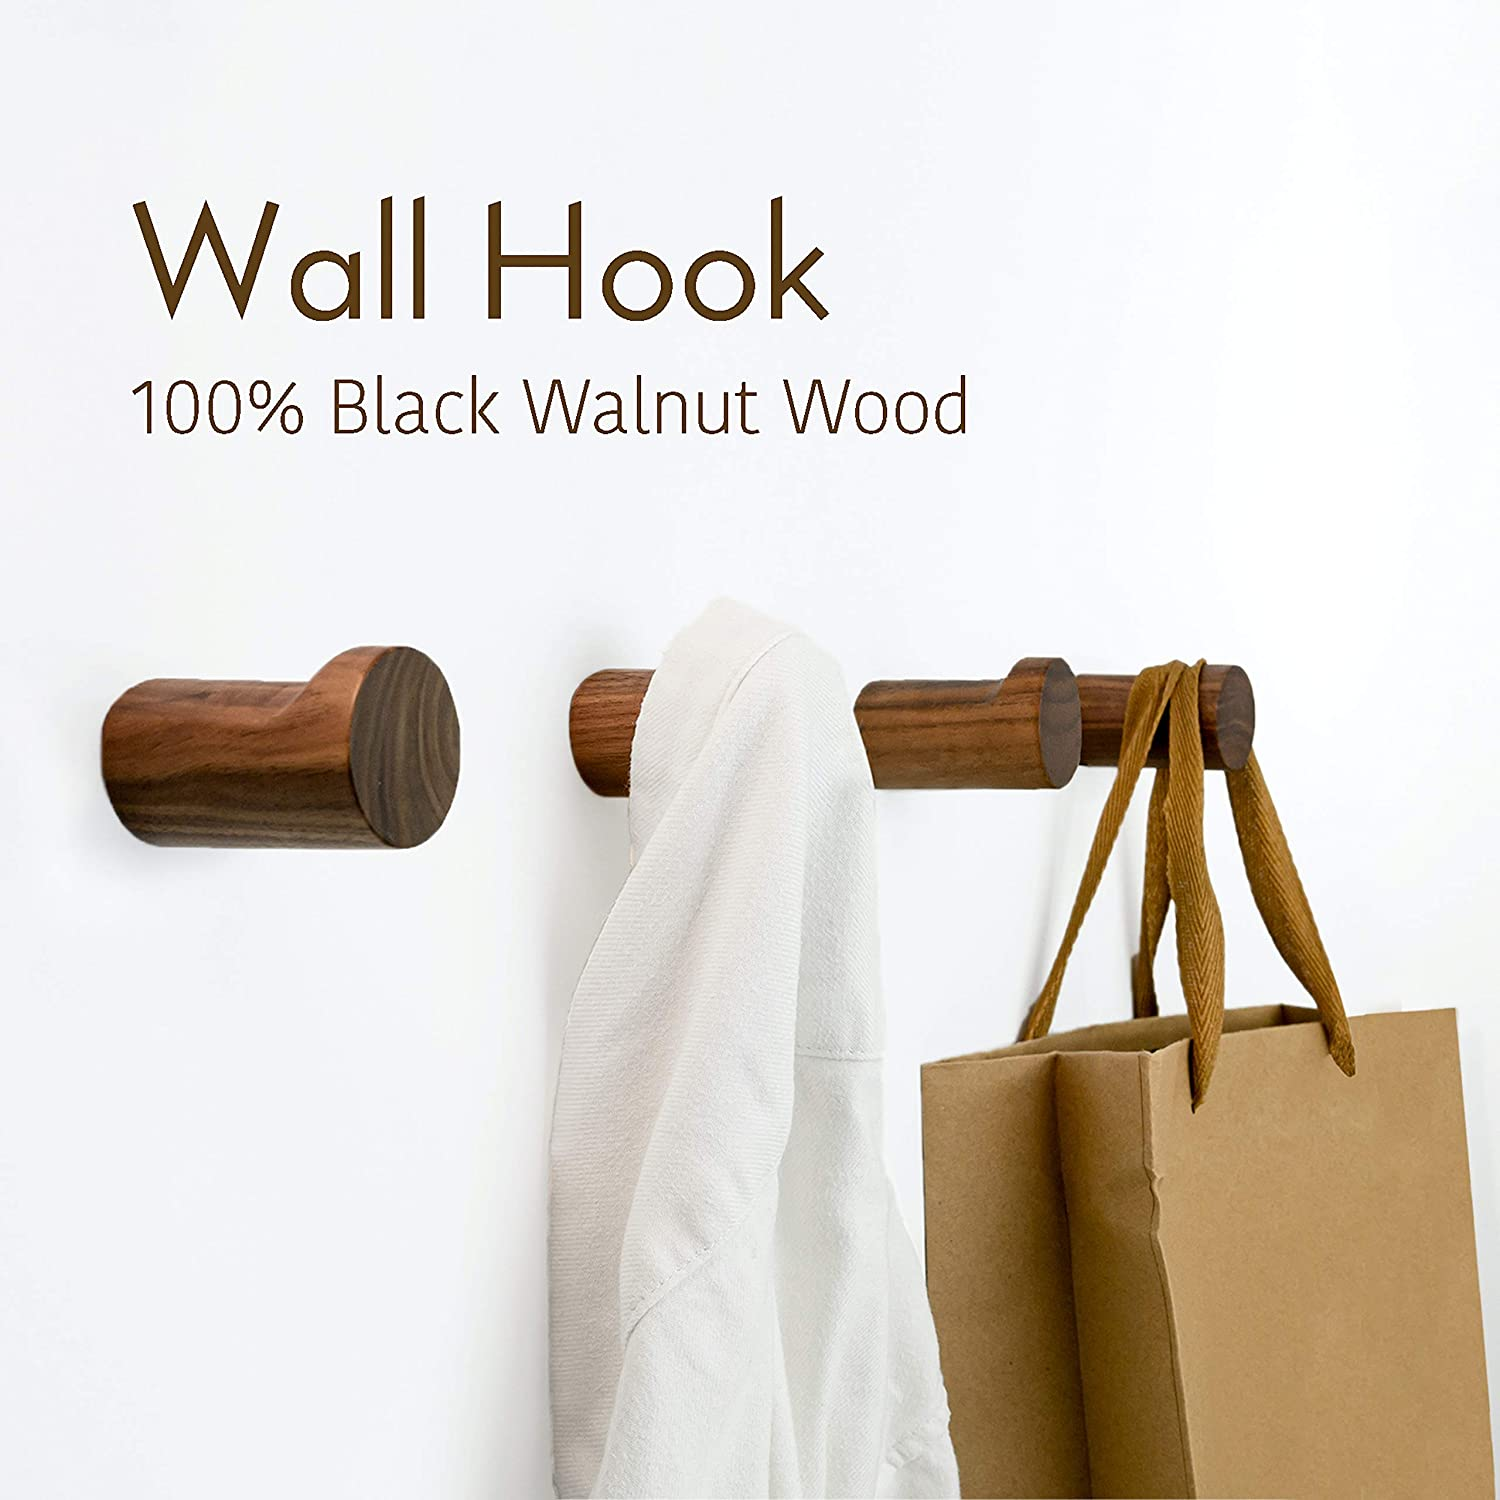 Handmade Minimalist Home Decor Wooden Pegs for Hanging Hat Pack of 4 NAUMOO Natural Wooden Wall Hooks Black Walnut Wall Mounted Modern Wood Coat Rack or Purse Towel